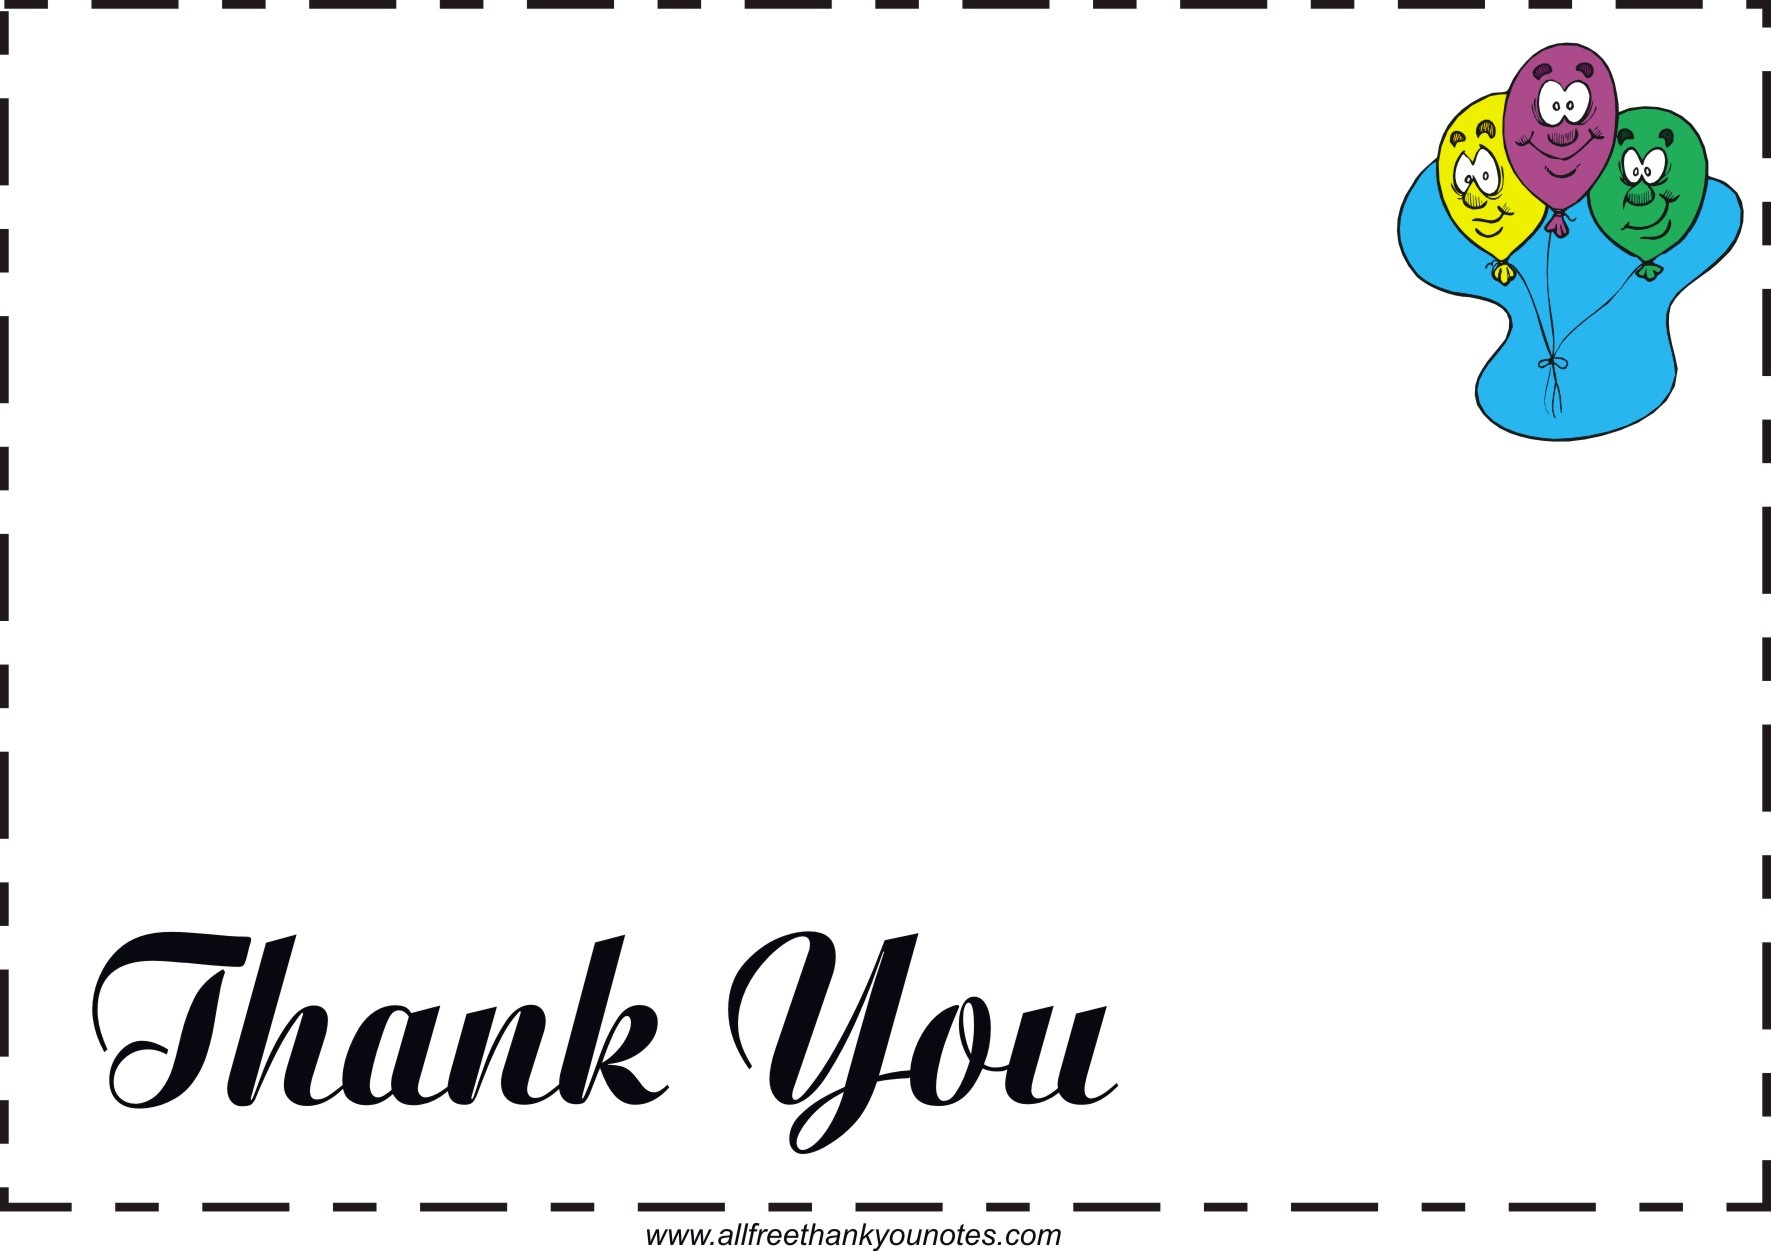 Free All Occasion Thank You Notes And Thank You Cards - Free Printable Thank You Cards Black And White